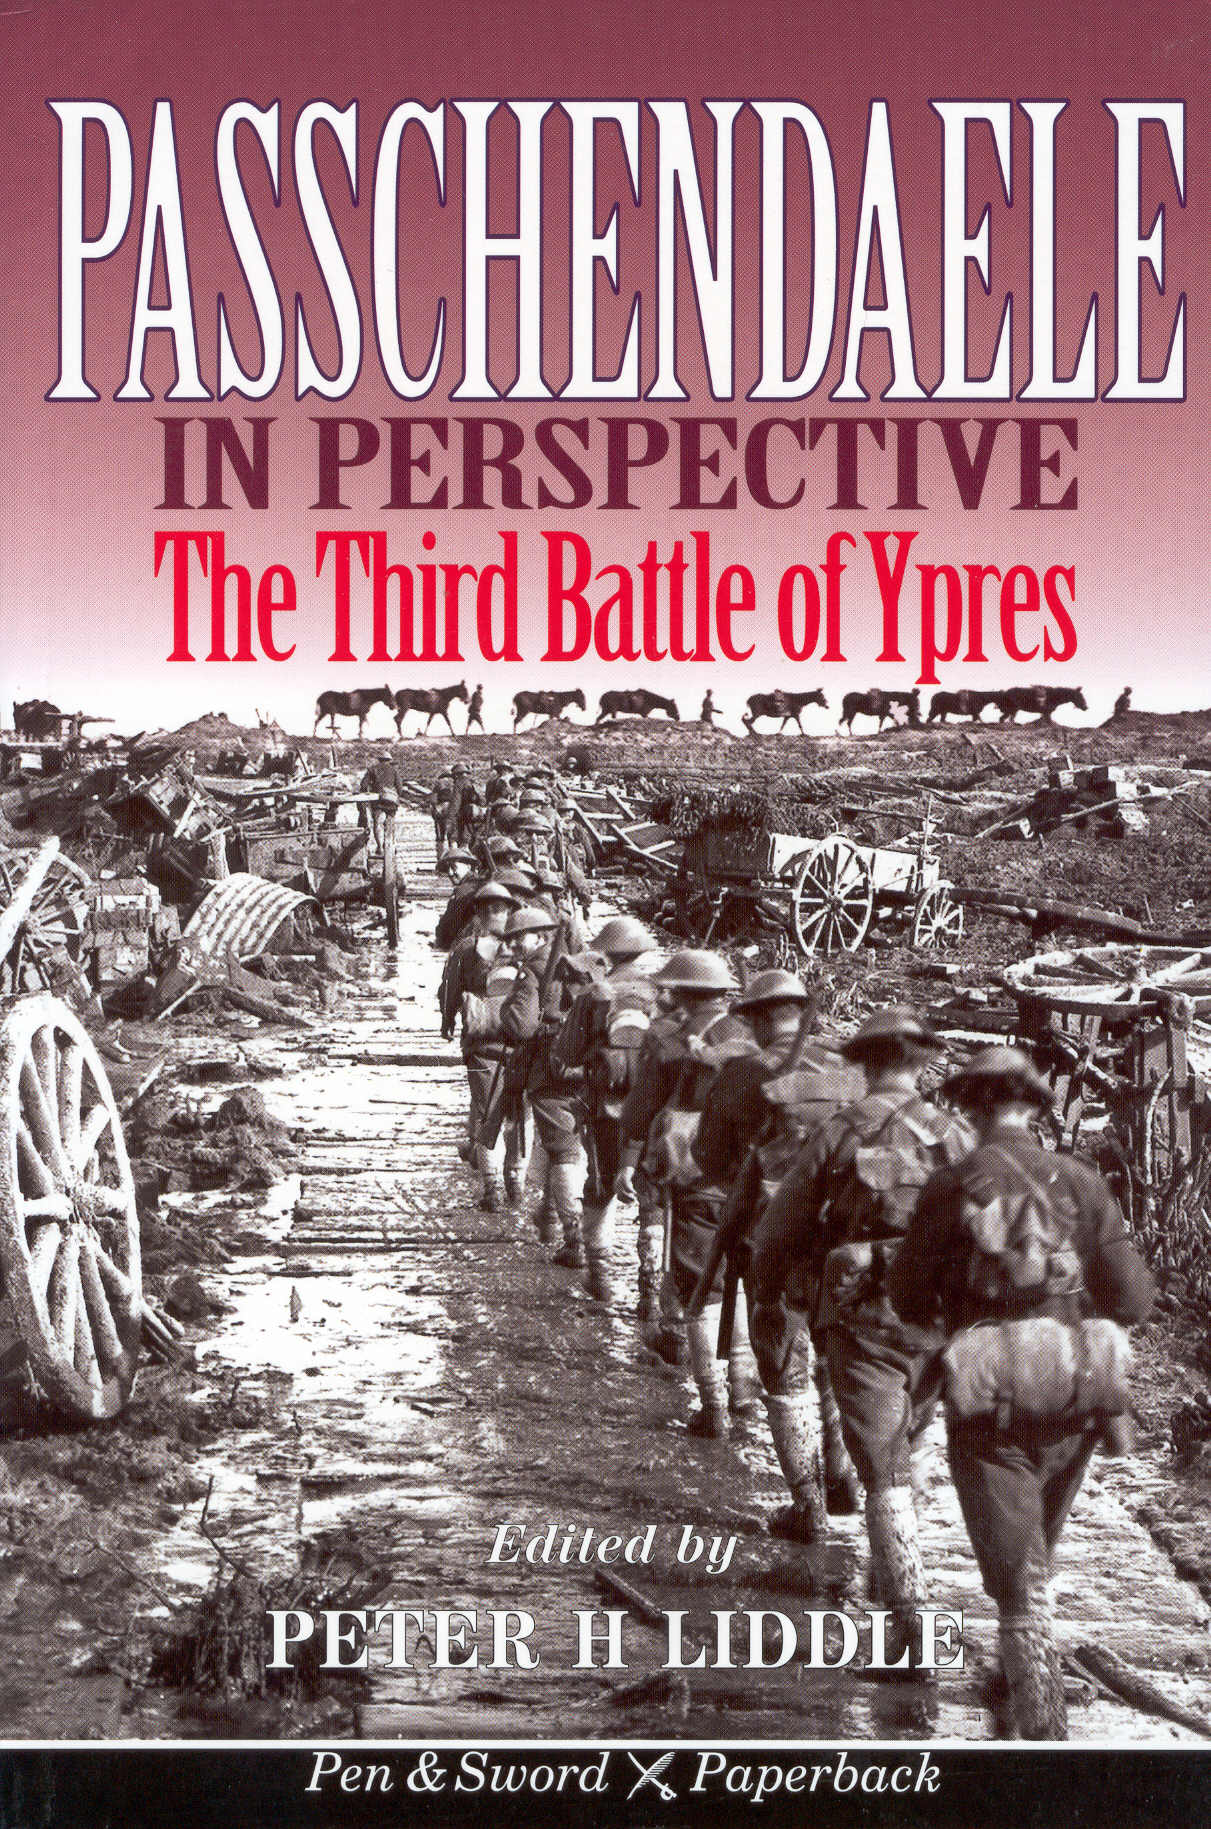 third battle of ypres essay A summary of the ww1 battles that took place around the ypres salient during 1914-1918 in belgium the greatwar 1914-1918  third battle of ypres, 1917.